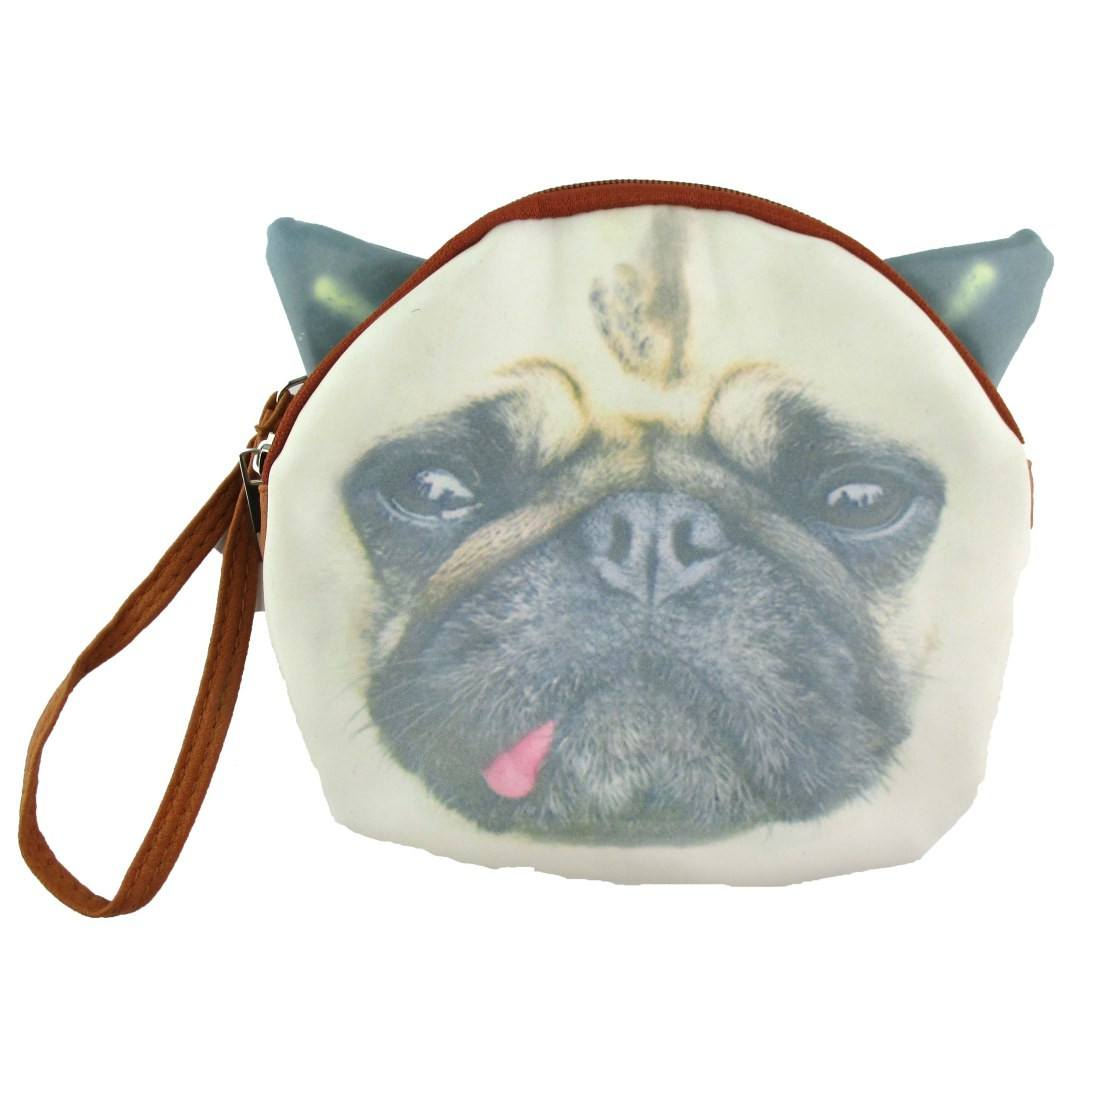 Pug Face with Tongue Sticking Out Shaped Clutch Bag